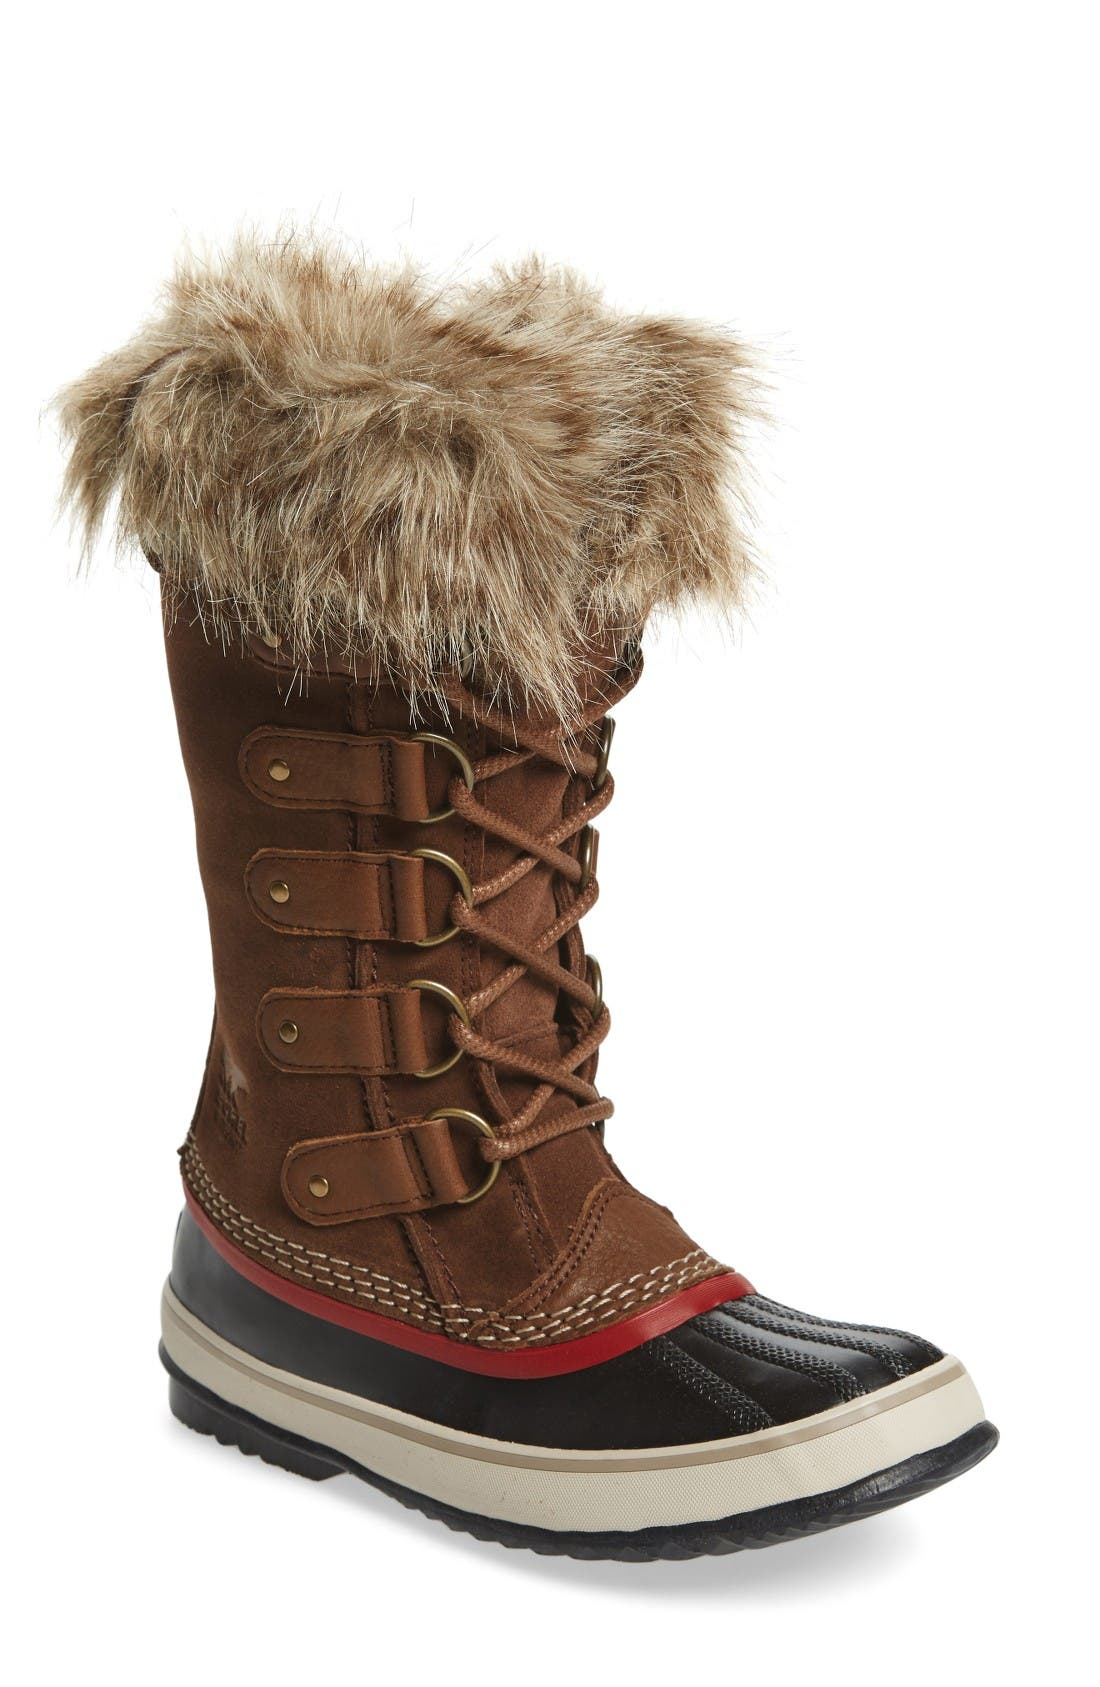 Main Image - SOREL 'Joan of Arctic' Waterproof Snow Boot